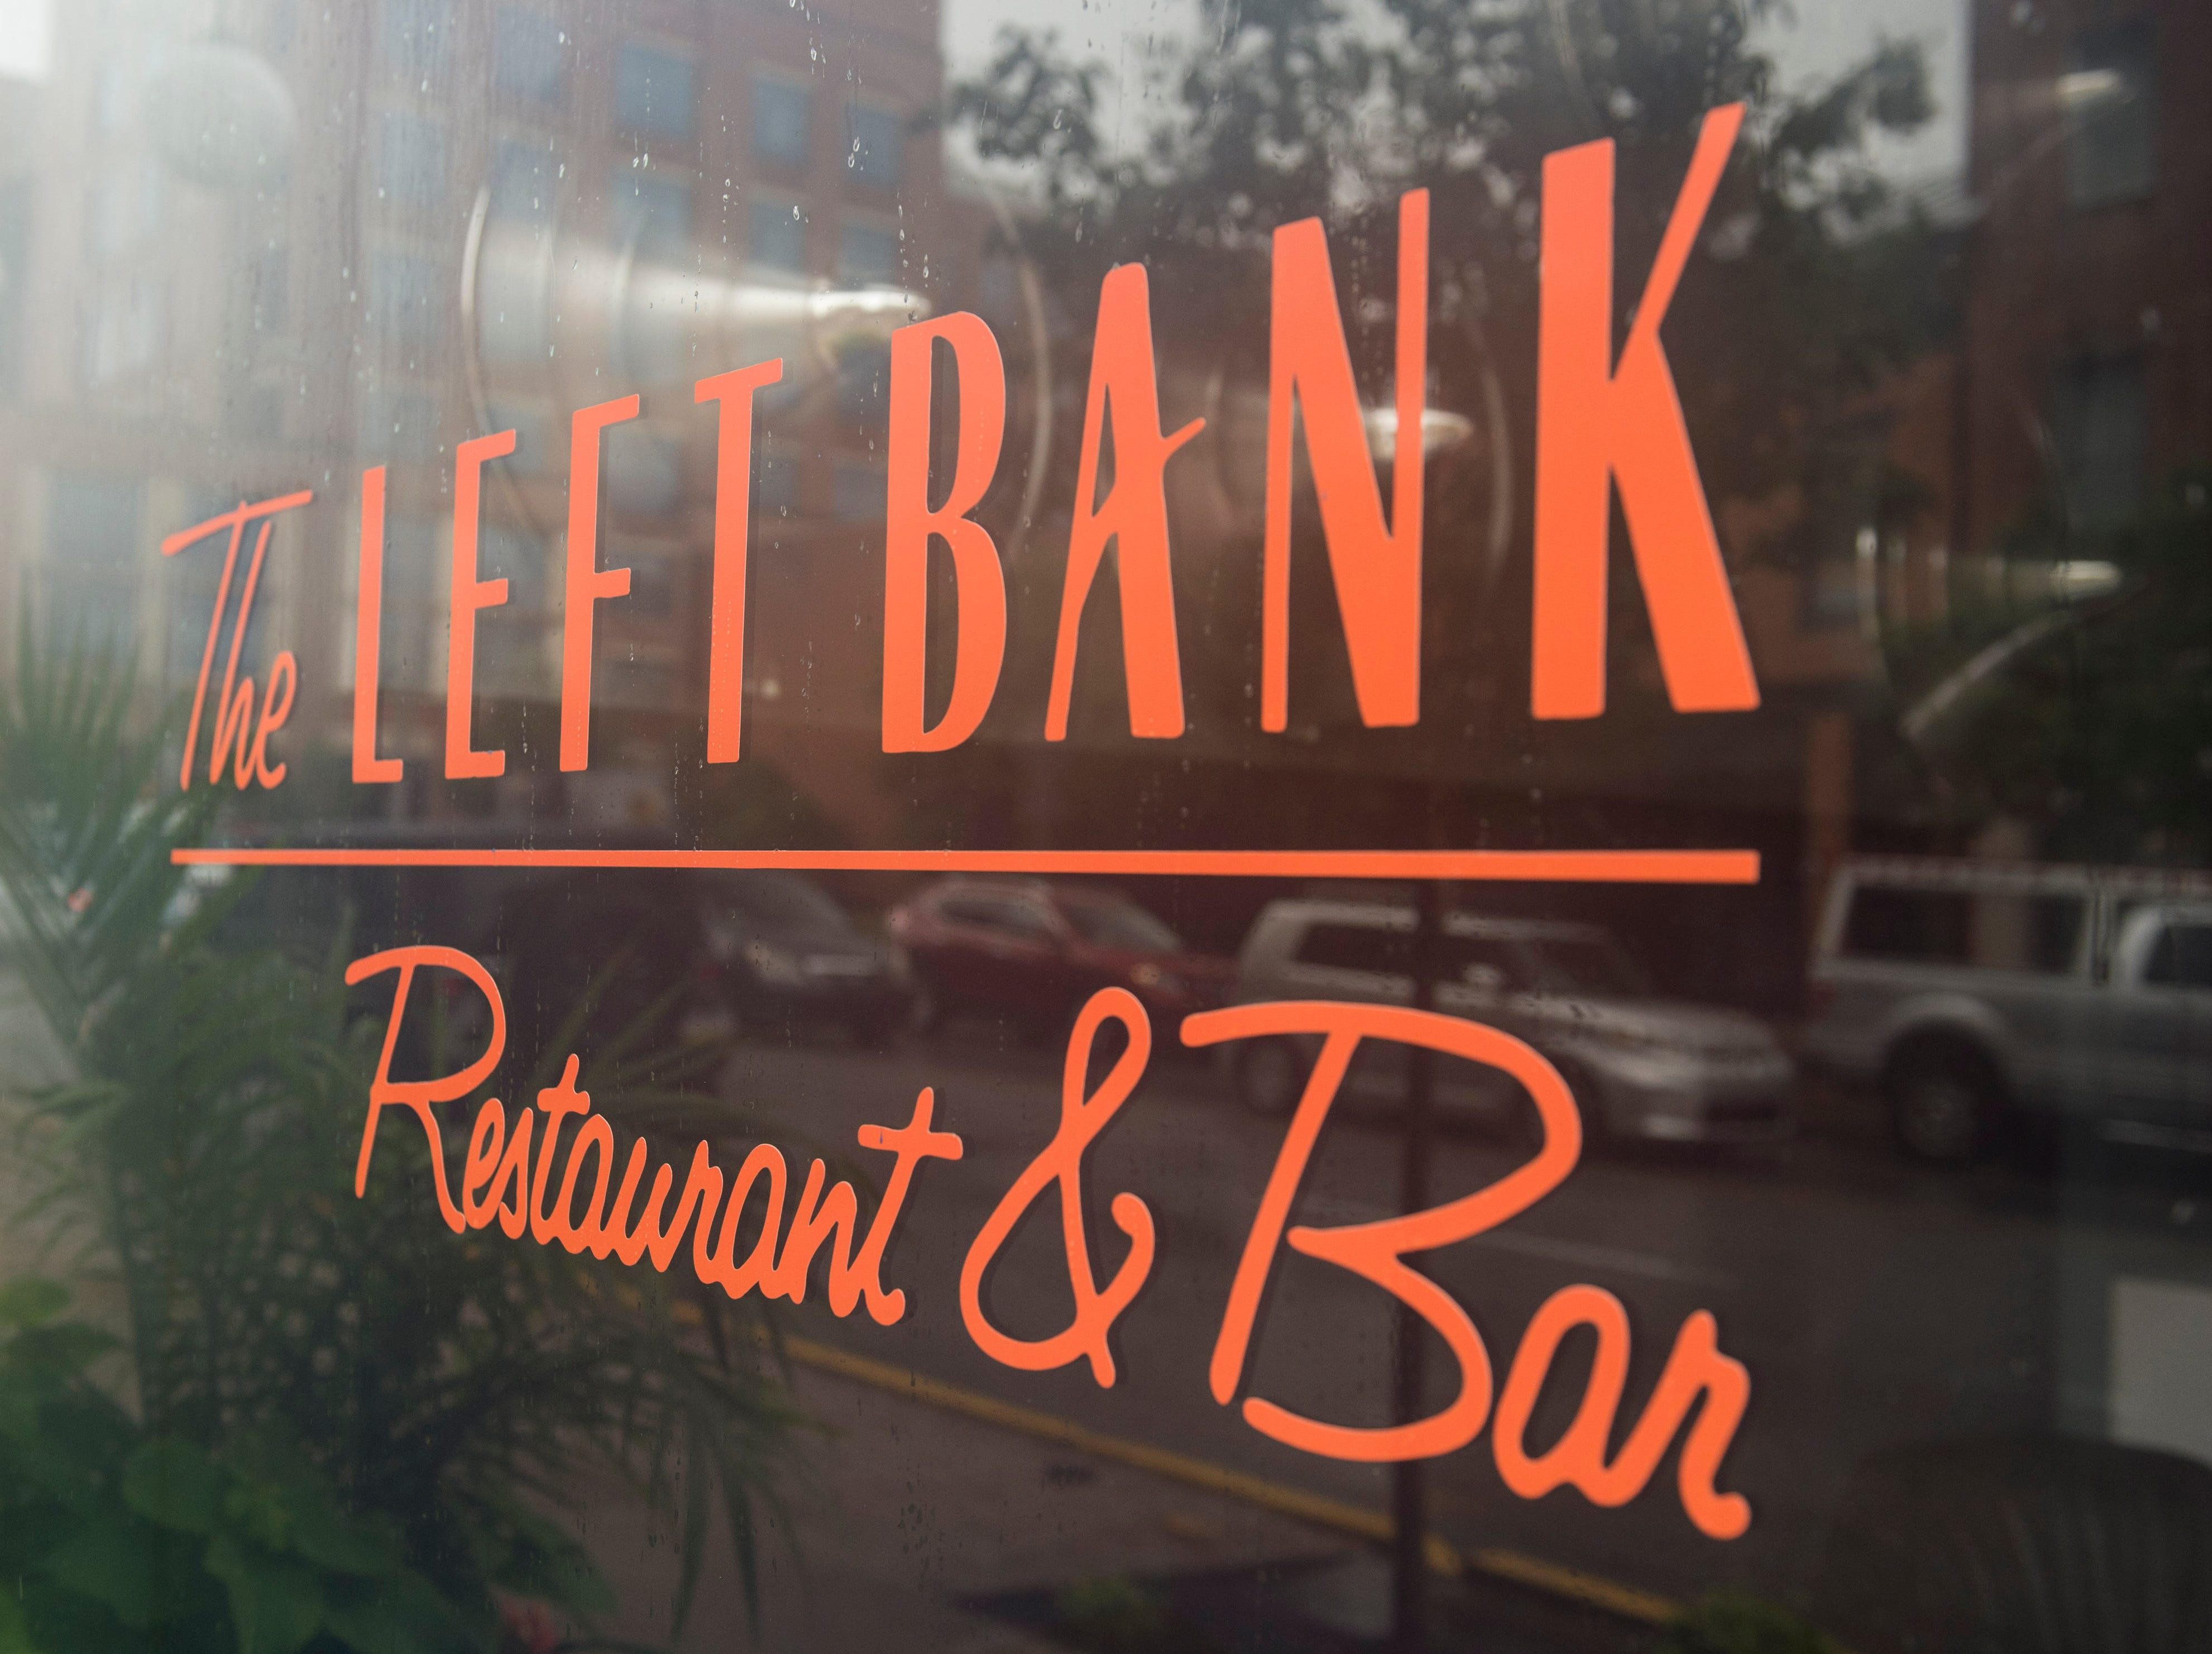 The Left Bank made changes to its restaurant from July 12 to July 24. In the 12 days, the restaurant overhauled everything from lighting fixtures to new paint.